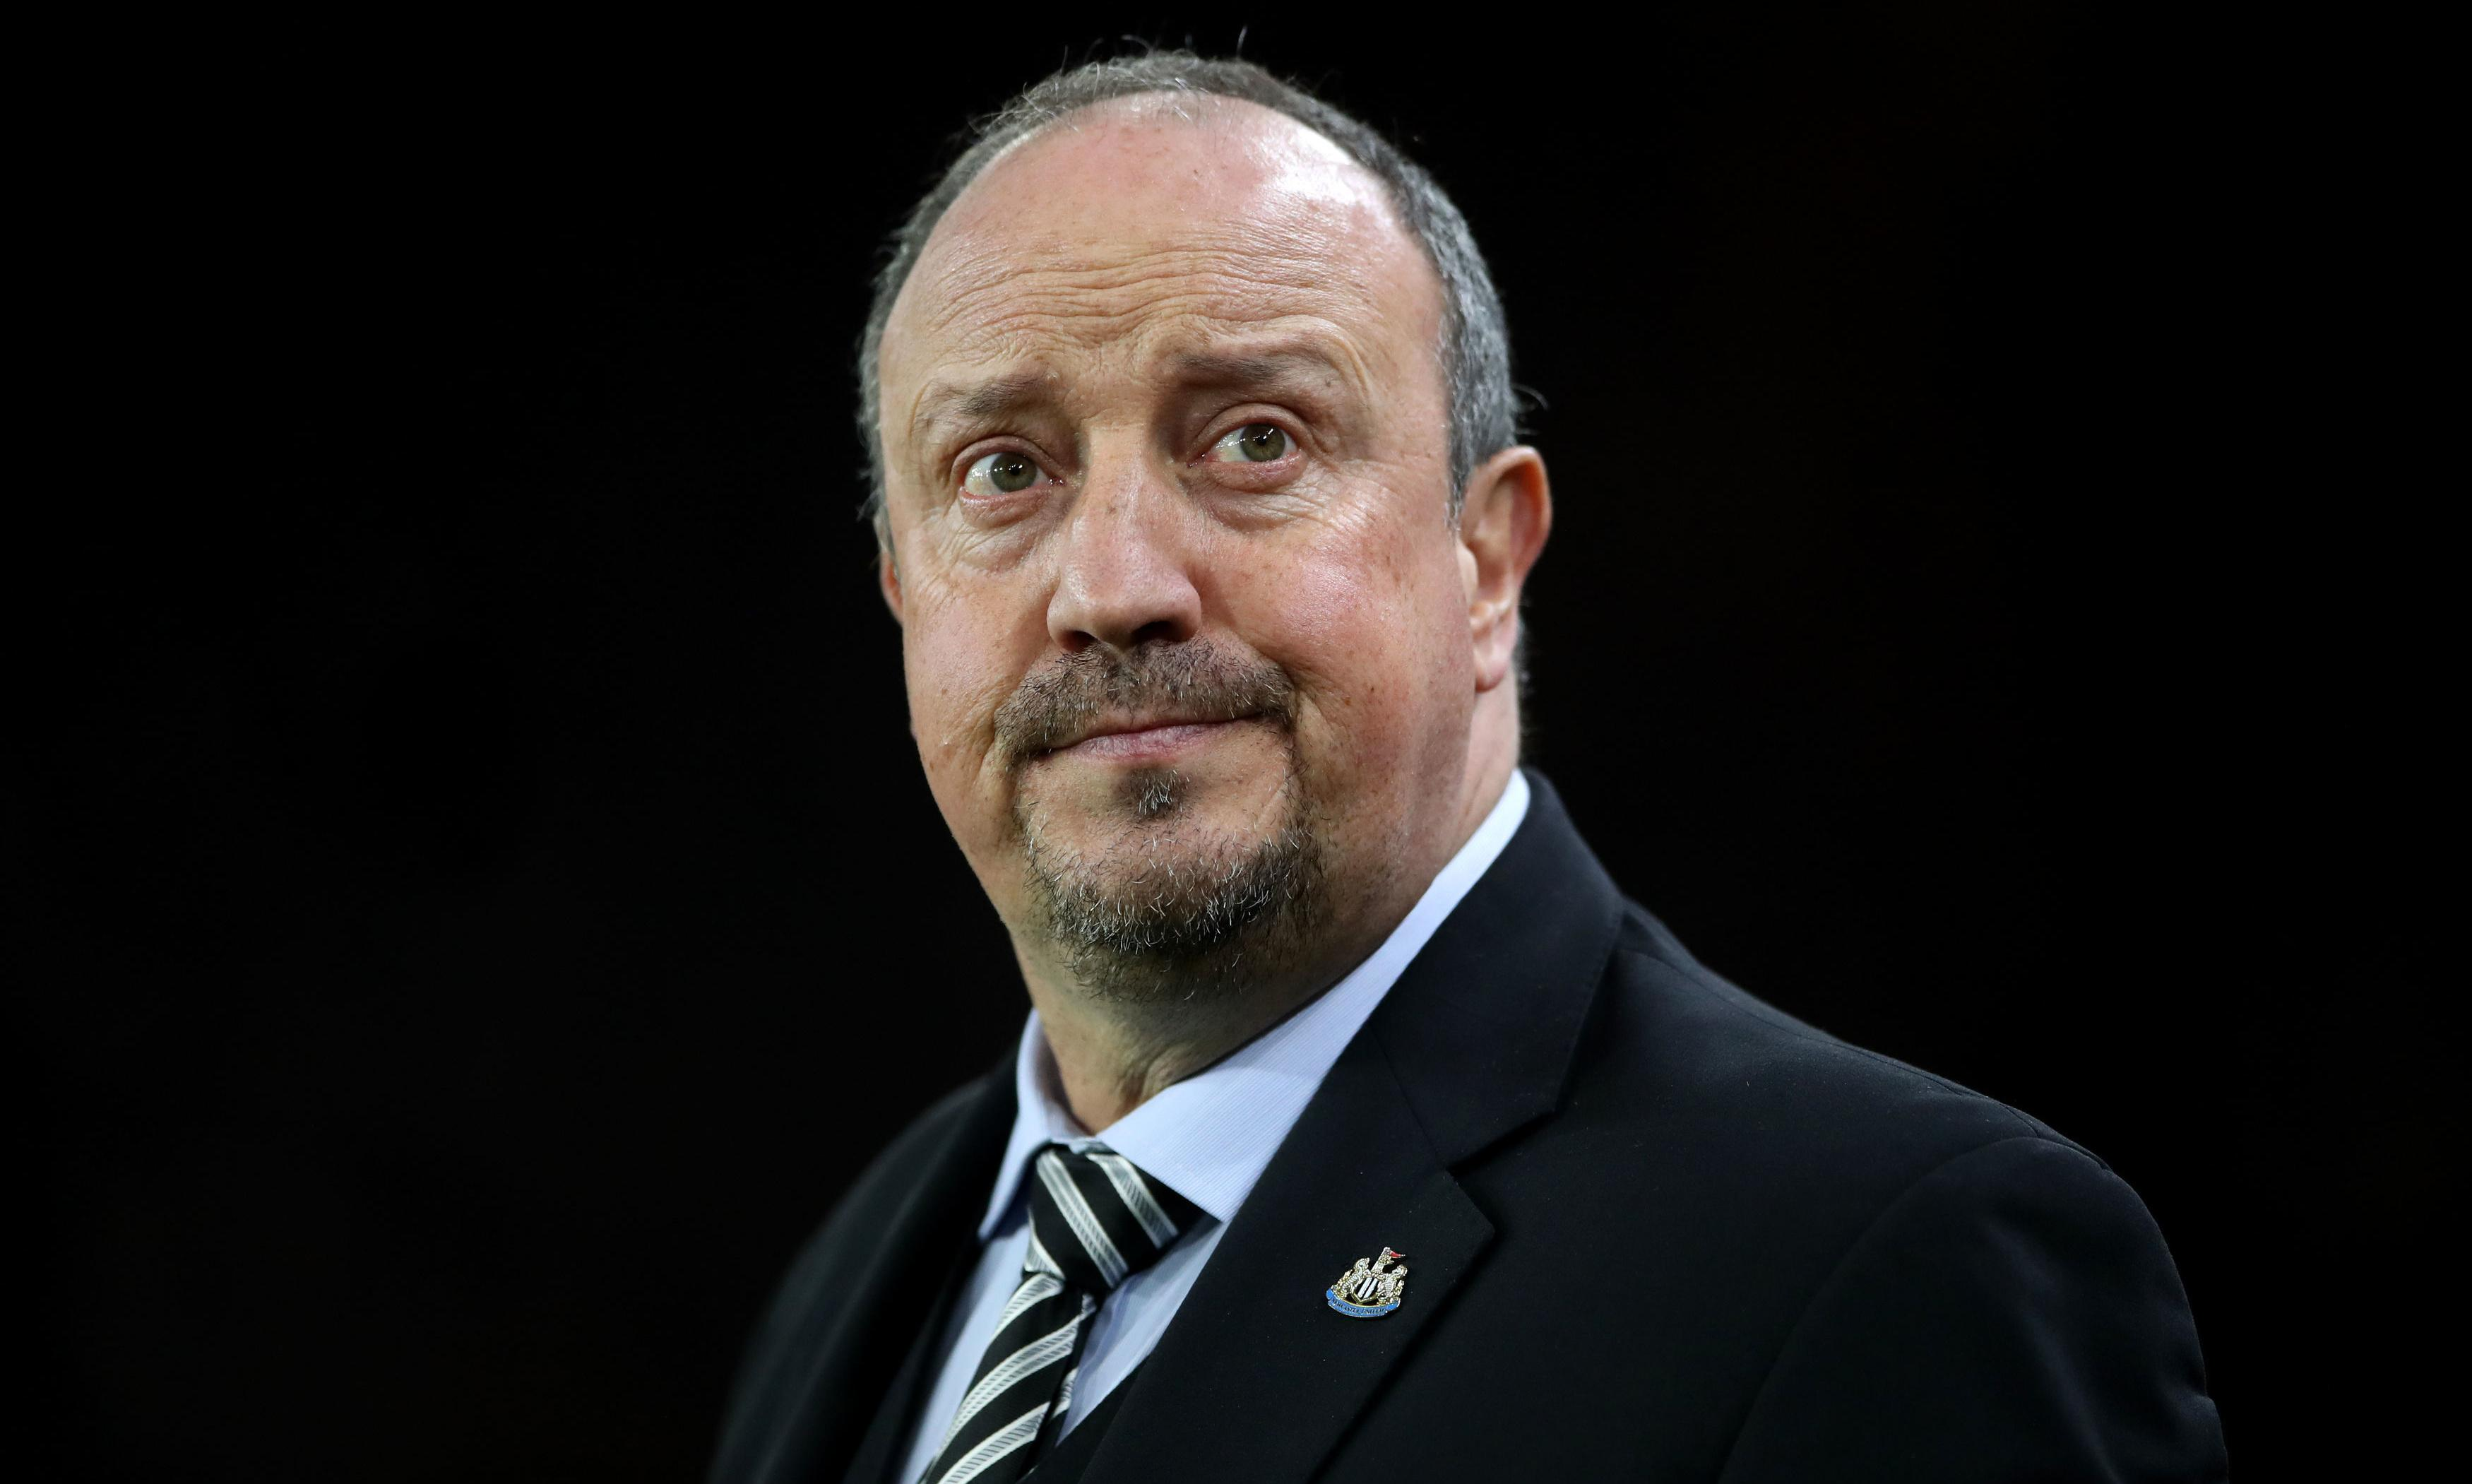 Rafael Benítez cites lack of trust as reason for leaving Newcastle